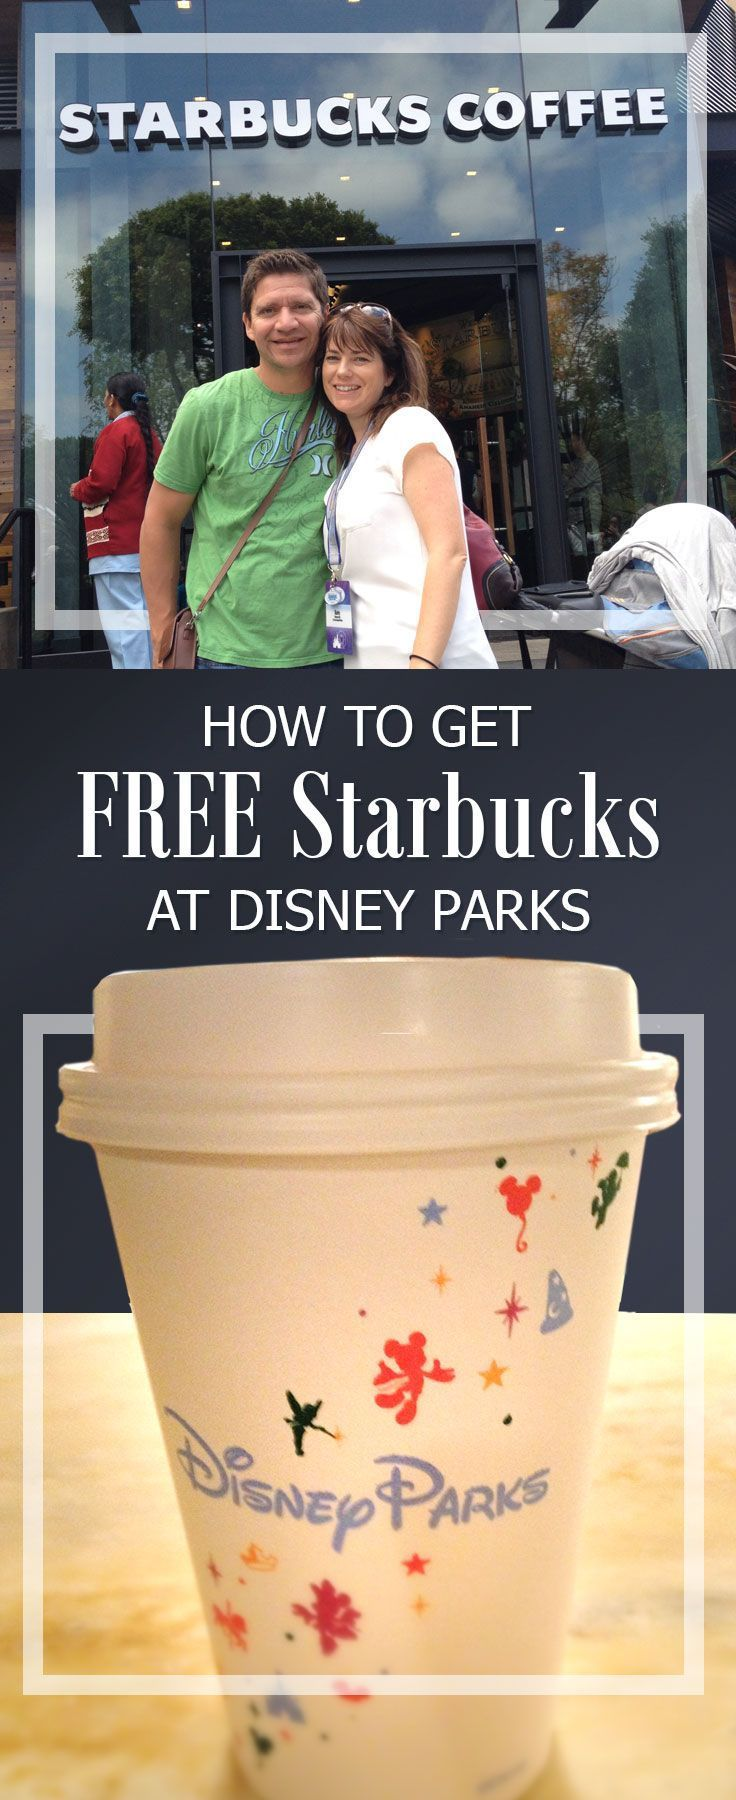 How to get FREE Starbucks coffee at treats at Disneyland and Walt Disney World. Where to find free samples and snacks too!